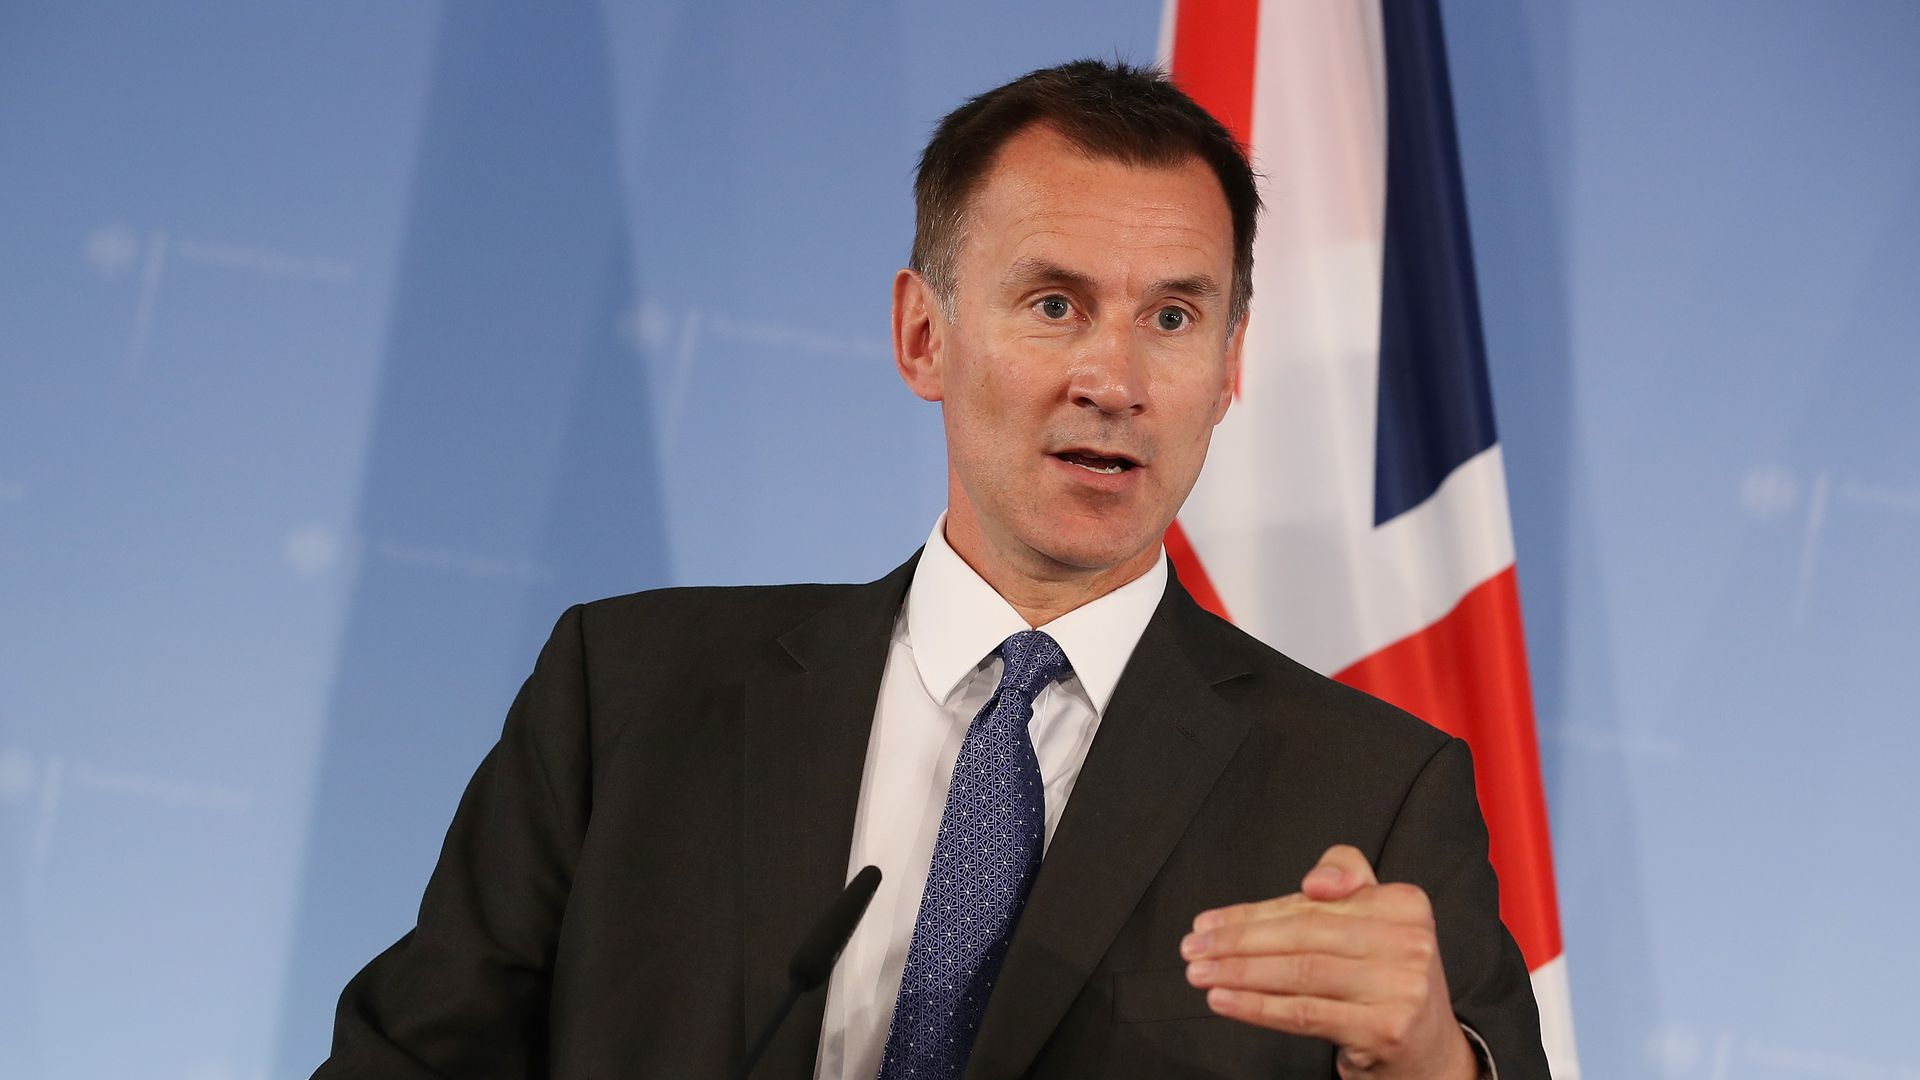 British foreign secretary Jeremy Hunt speaking